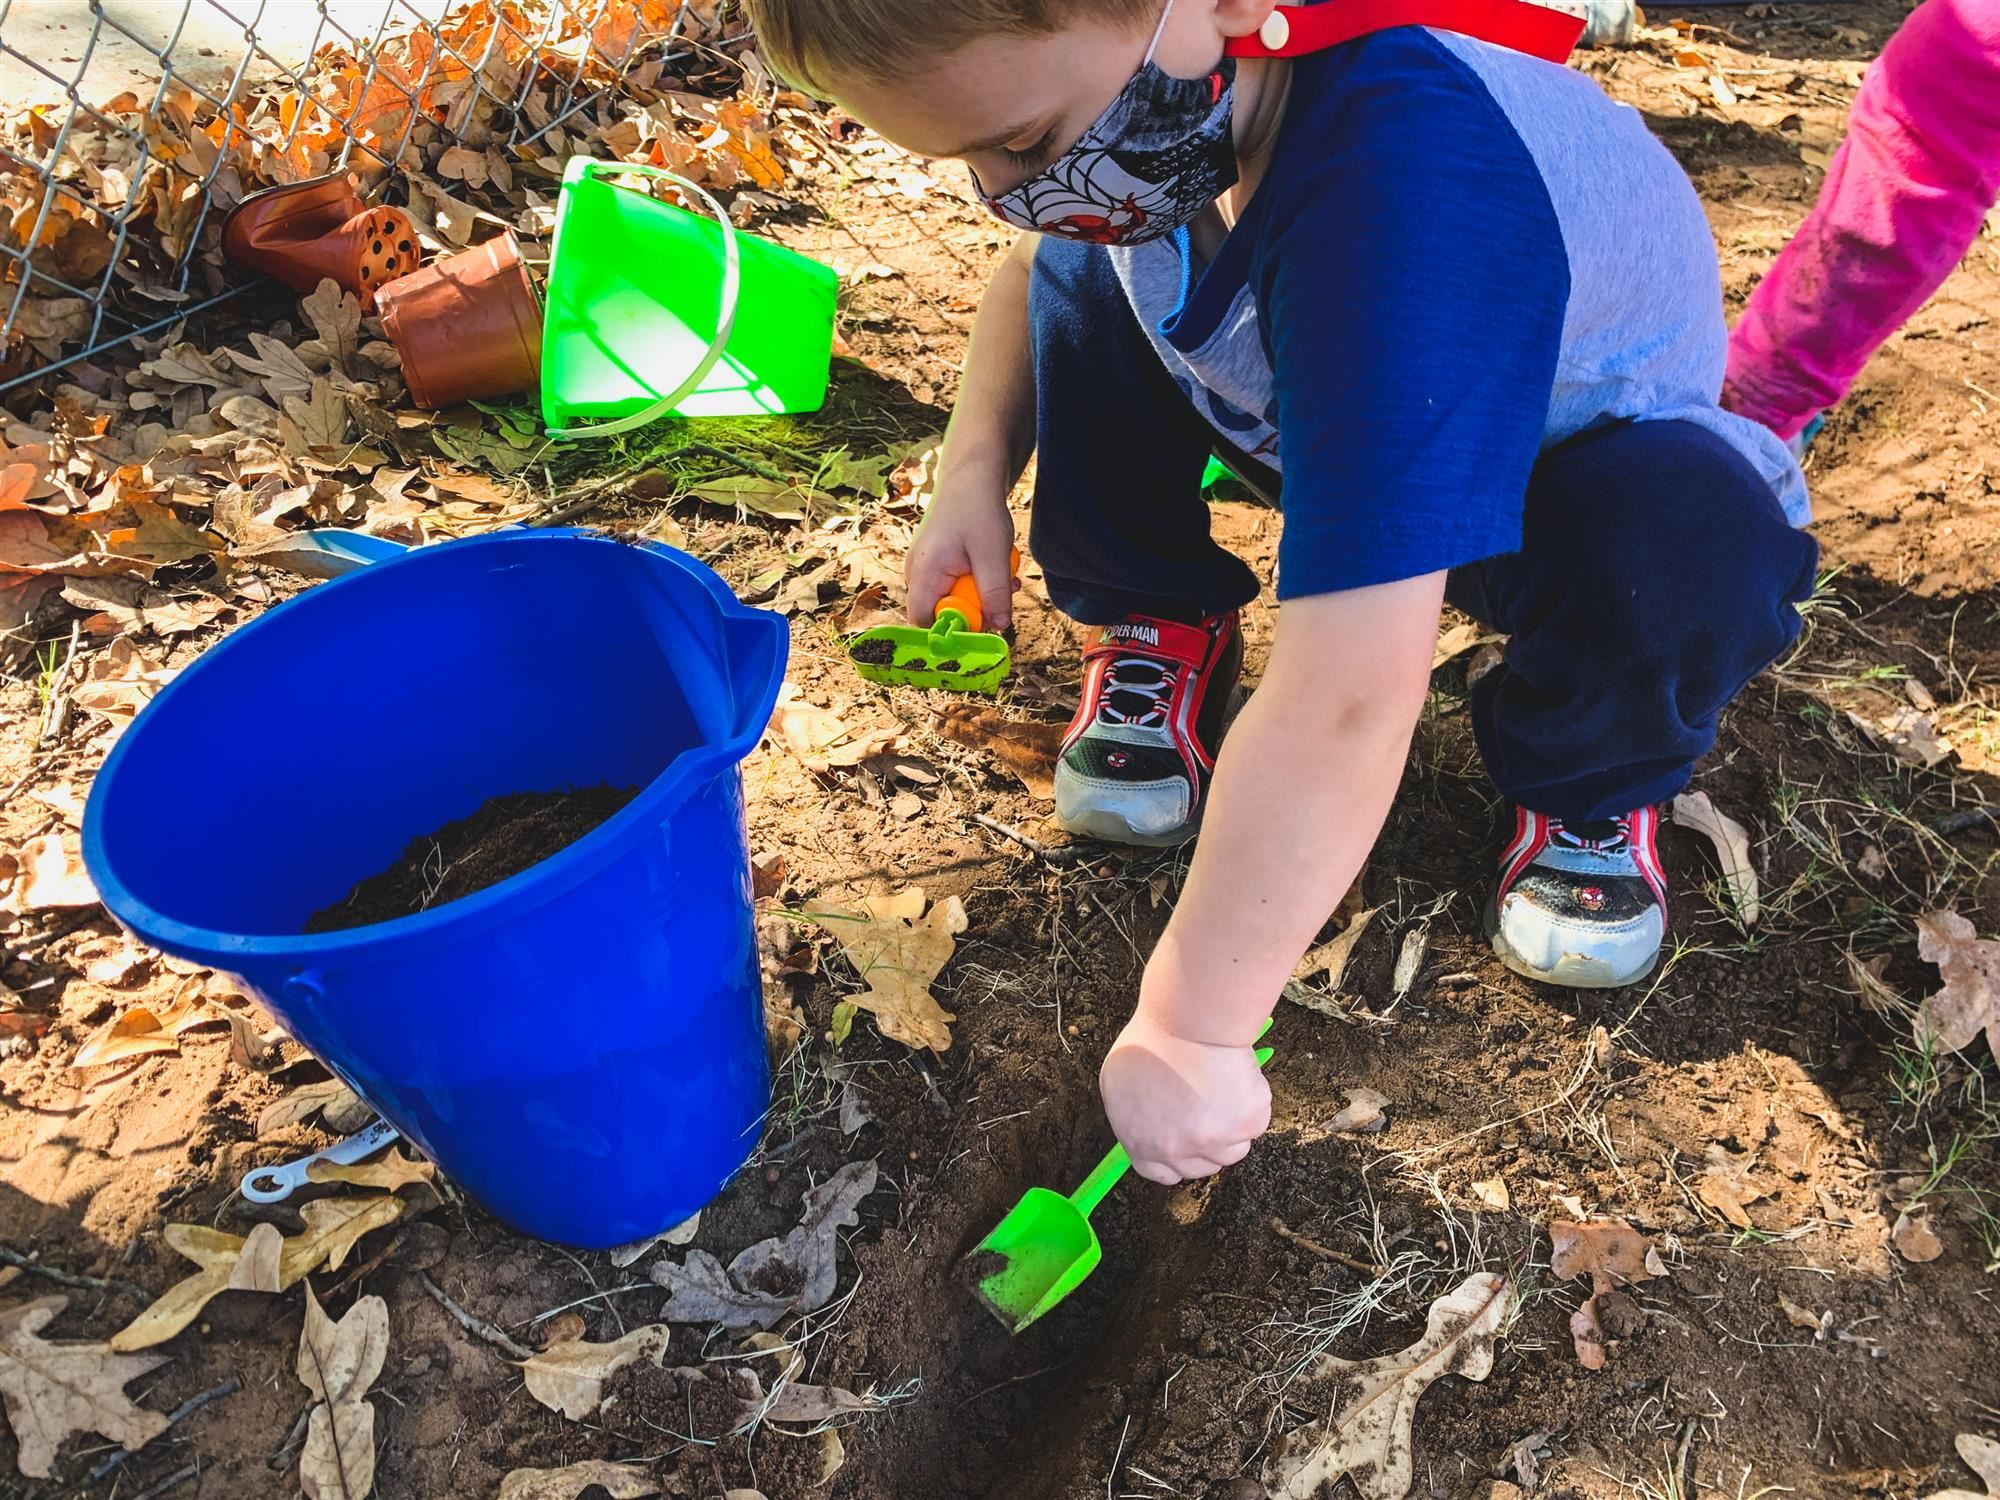 student digs in dirt with shovel